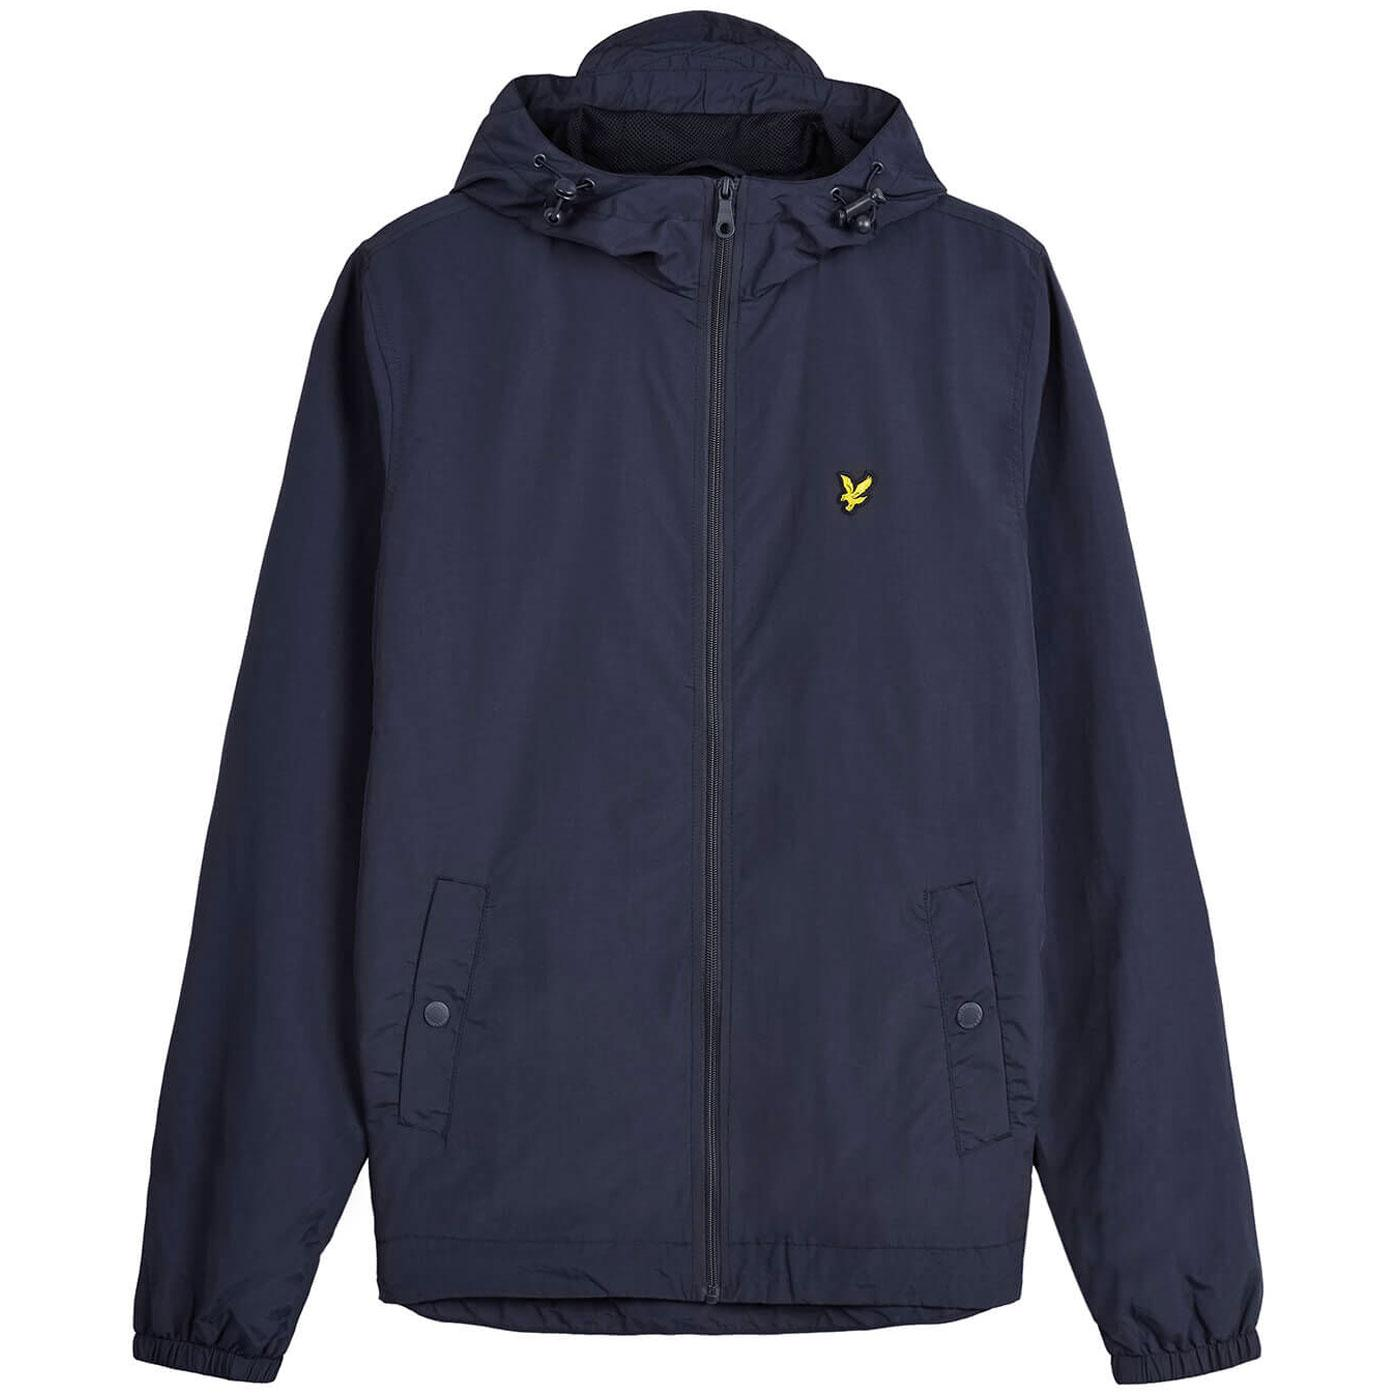 LYLE AND SCOTT Retro 90s Casual Hooded Jacket (N)